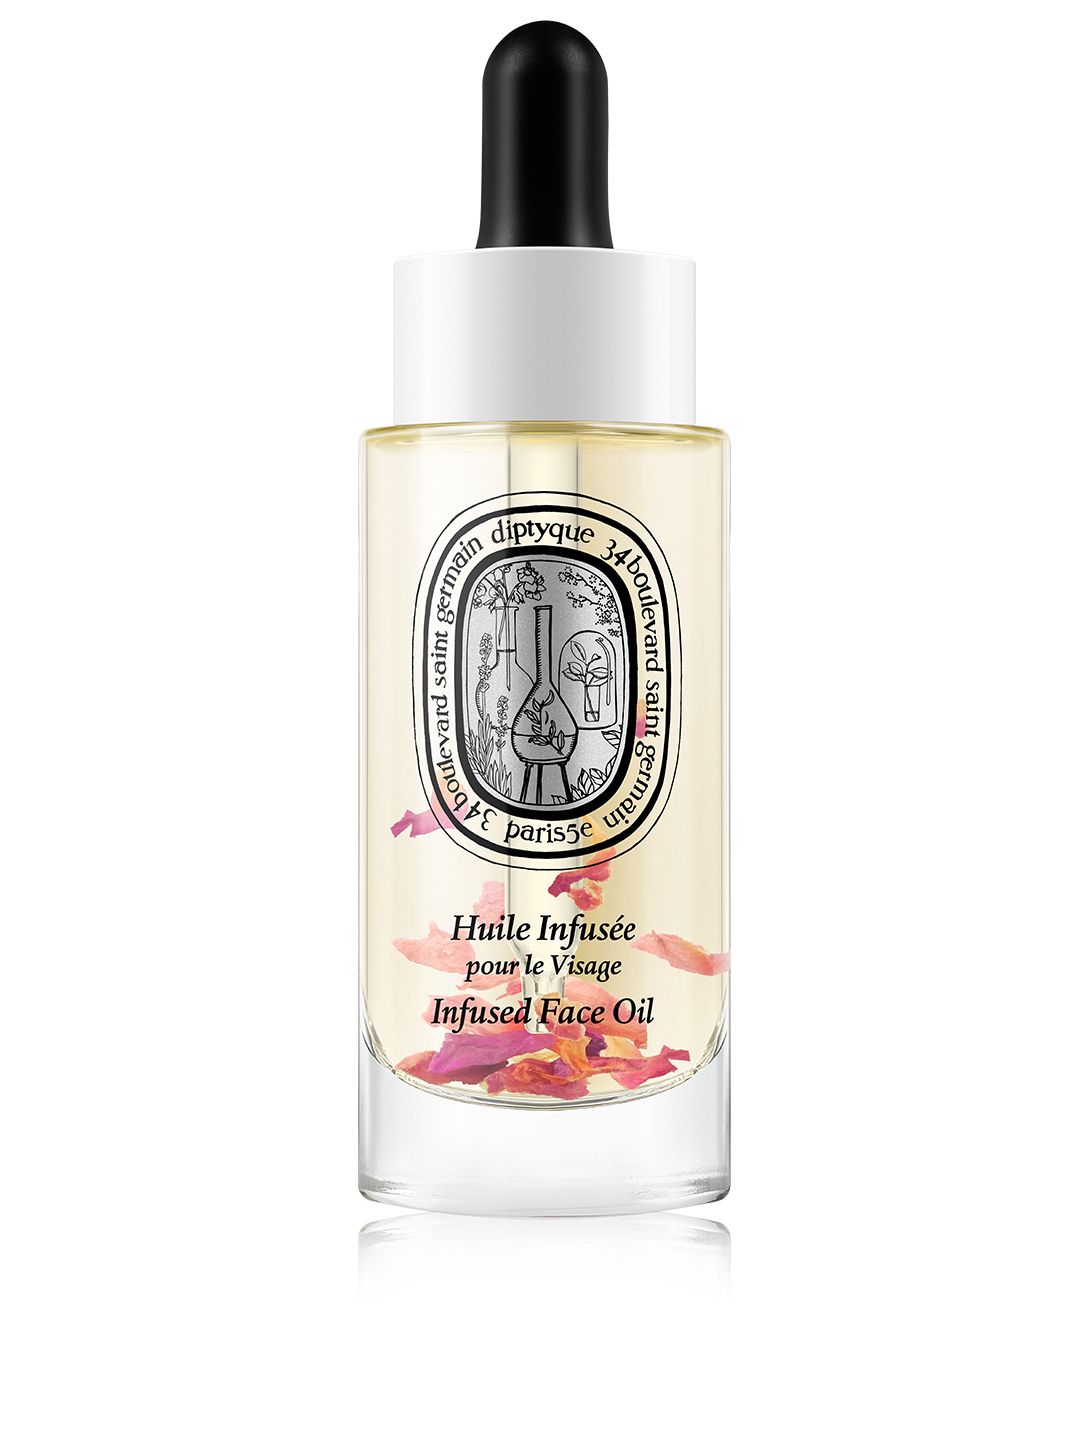 DIPTYQUE Infused Face Oil Beauty